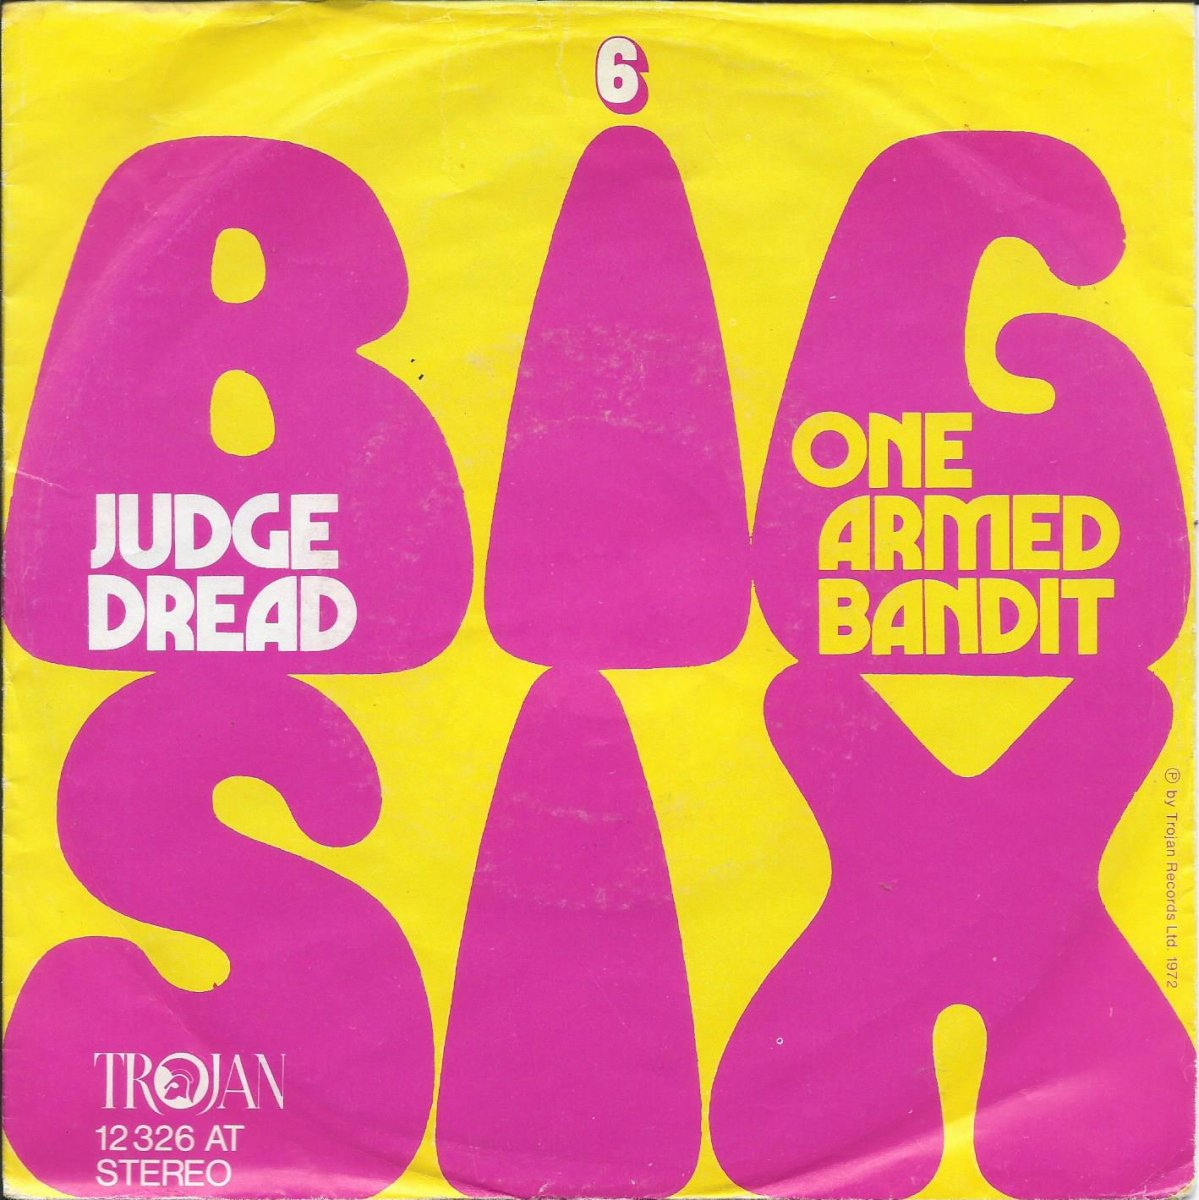 JUDGE DREAD ‎/ BIG SIX / ONE ARMED BANDIT (7